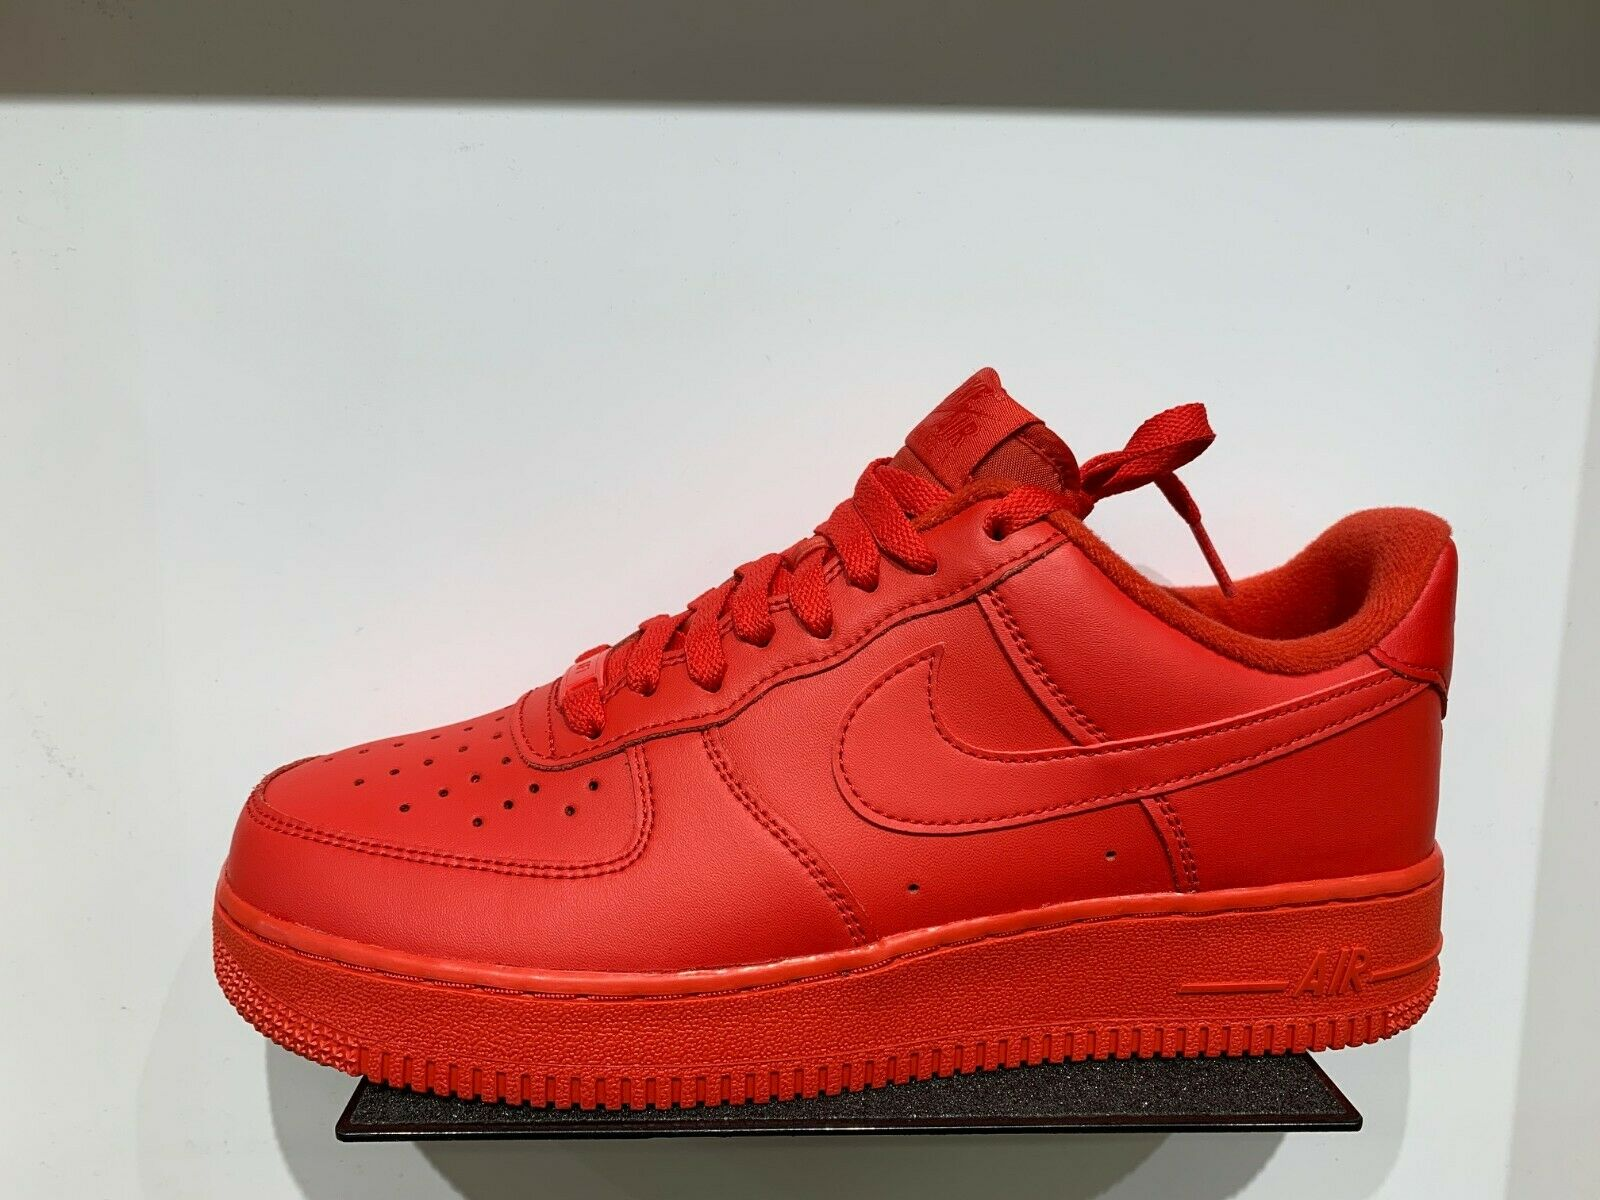 Buy \u003e nike air force 1 high red october - 58% OFF online